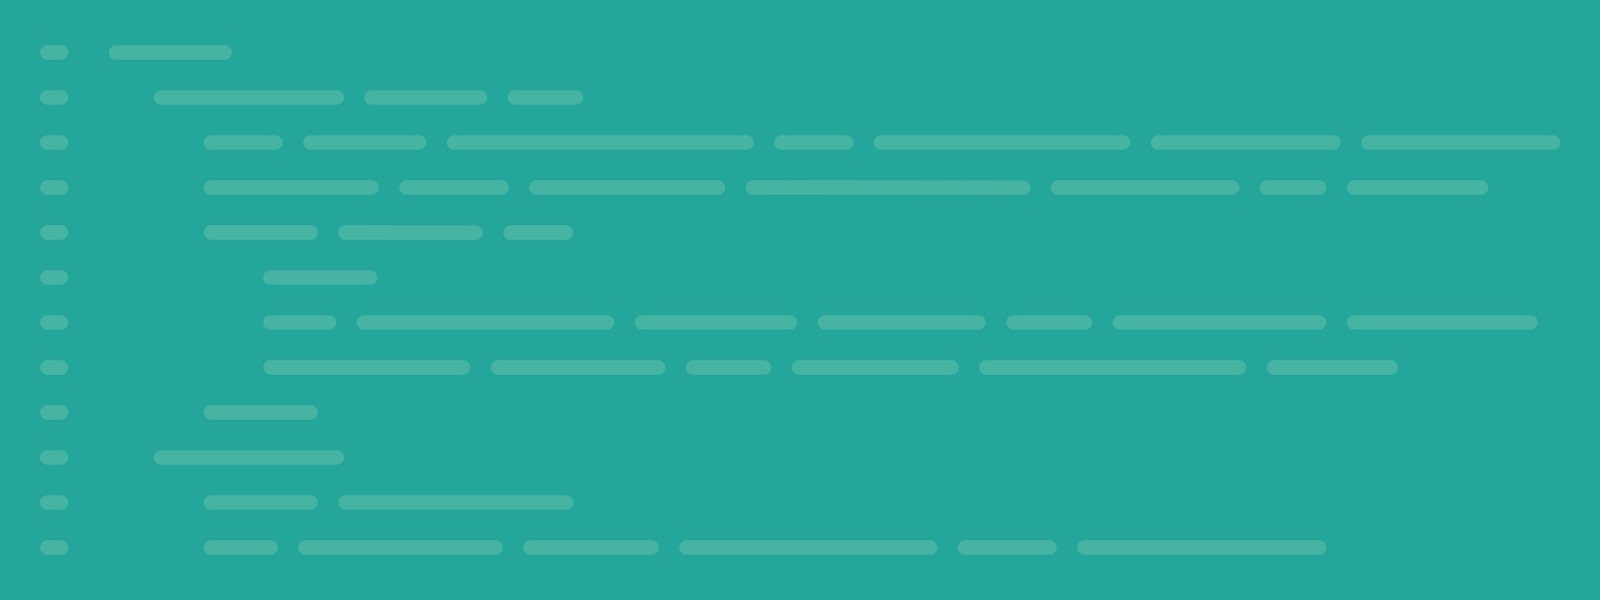 Green background with light green lines representing backend code